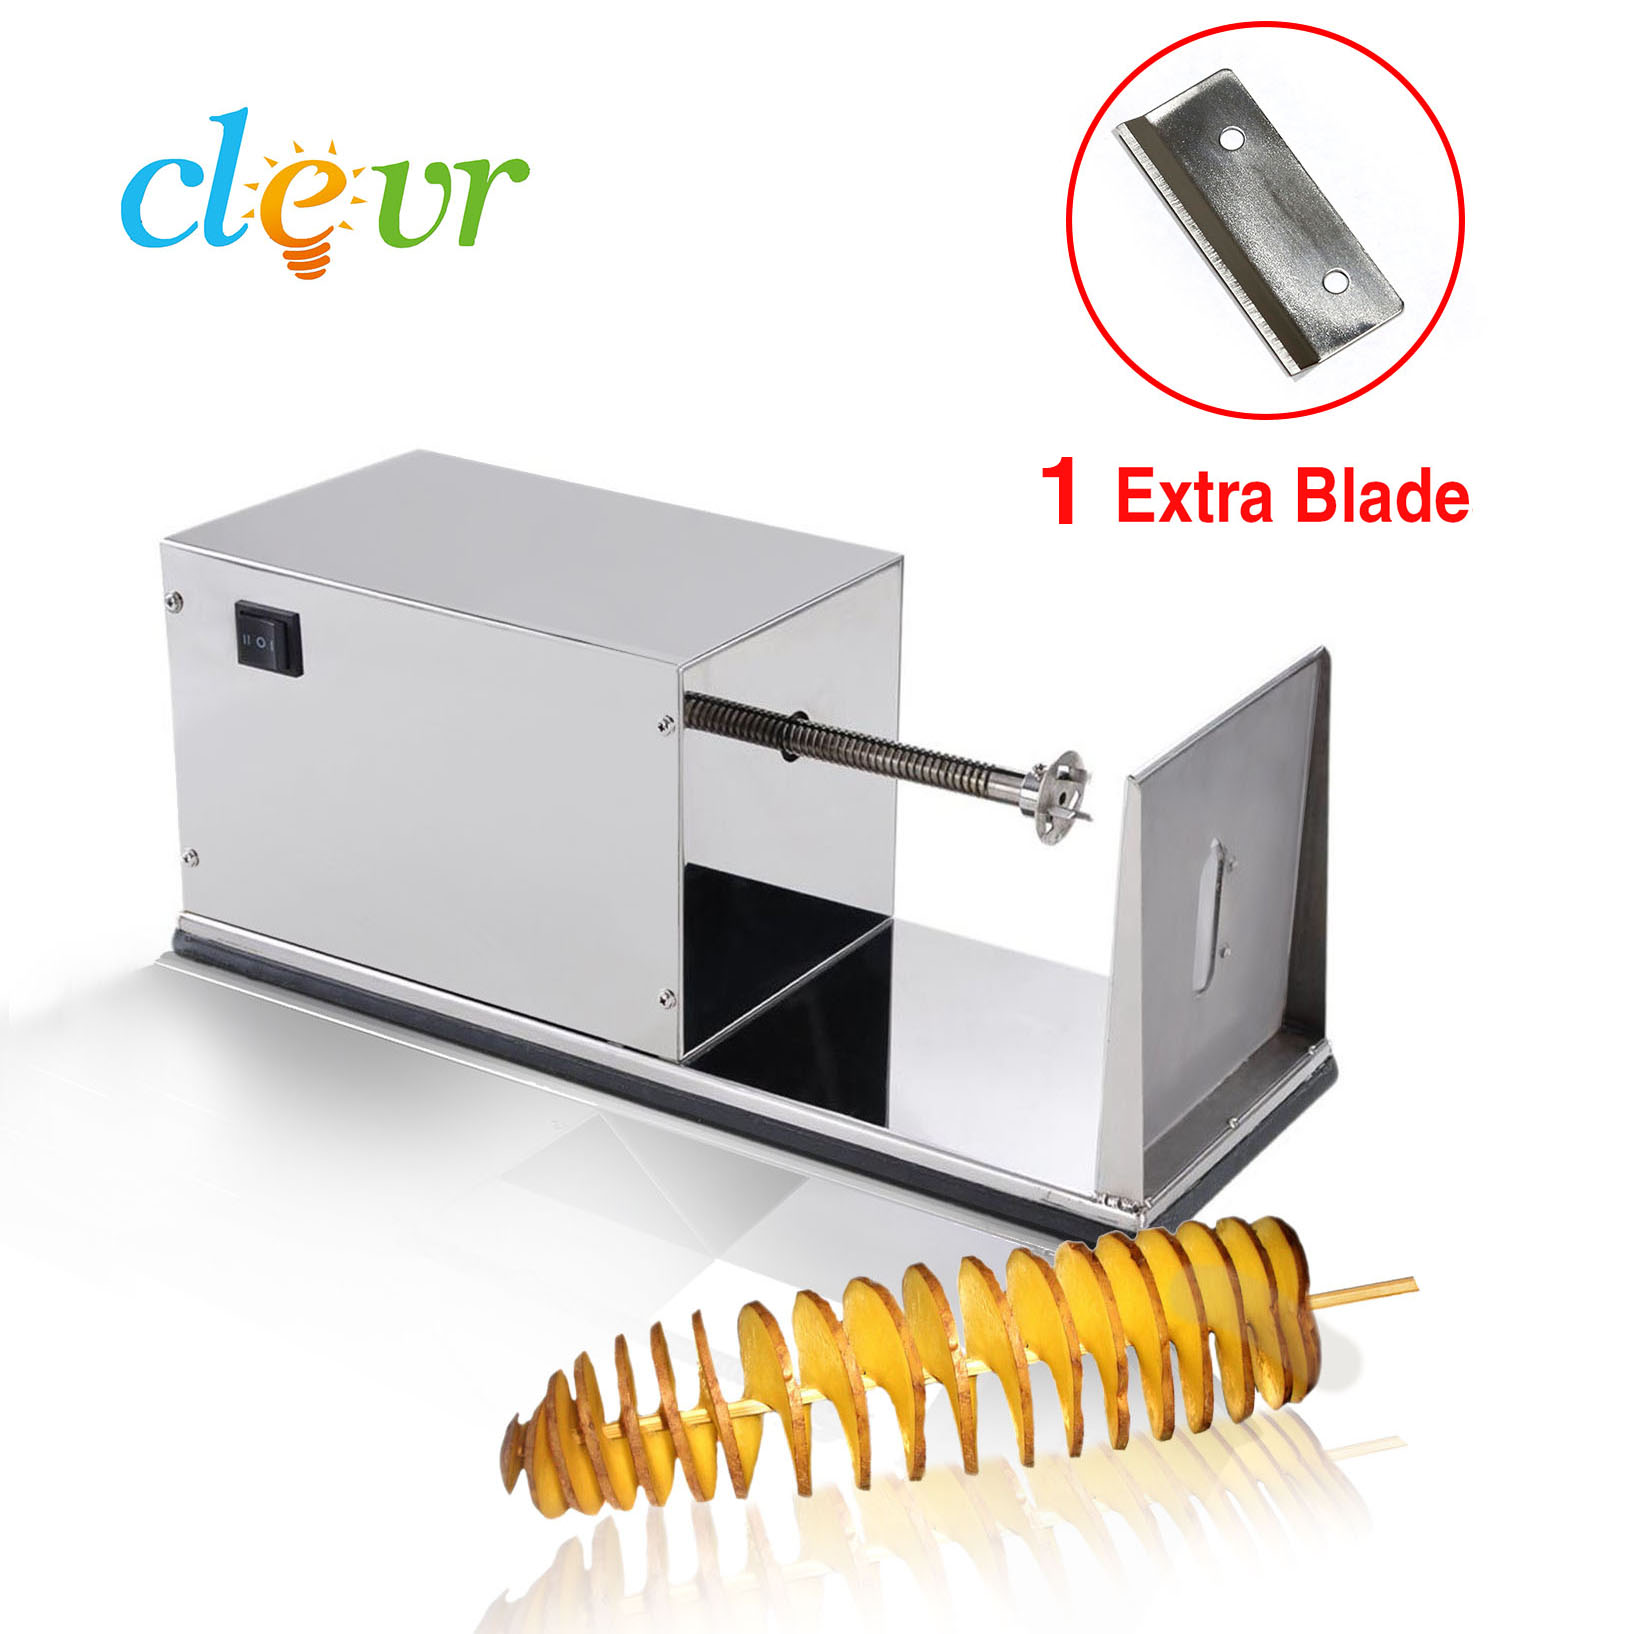 Clevr Automatic Stainless Steel Potato Tornado Slicer Cutter Machine